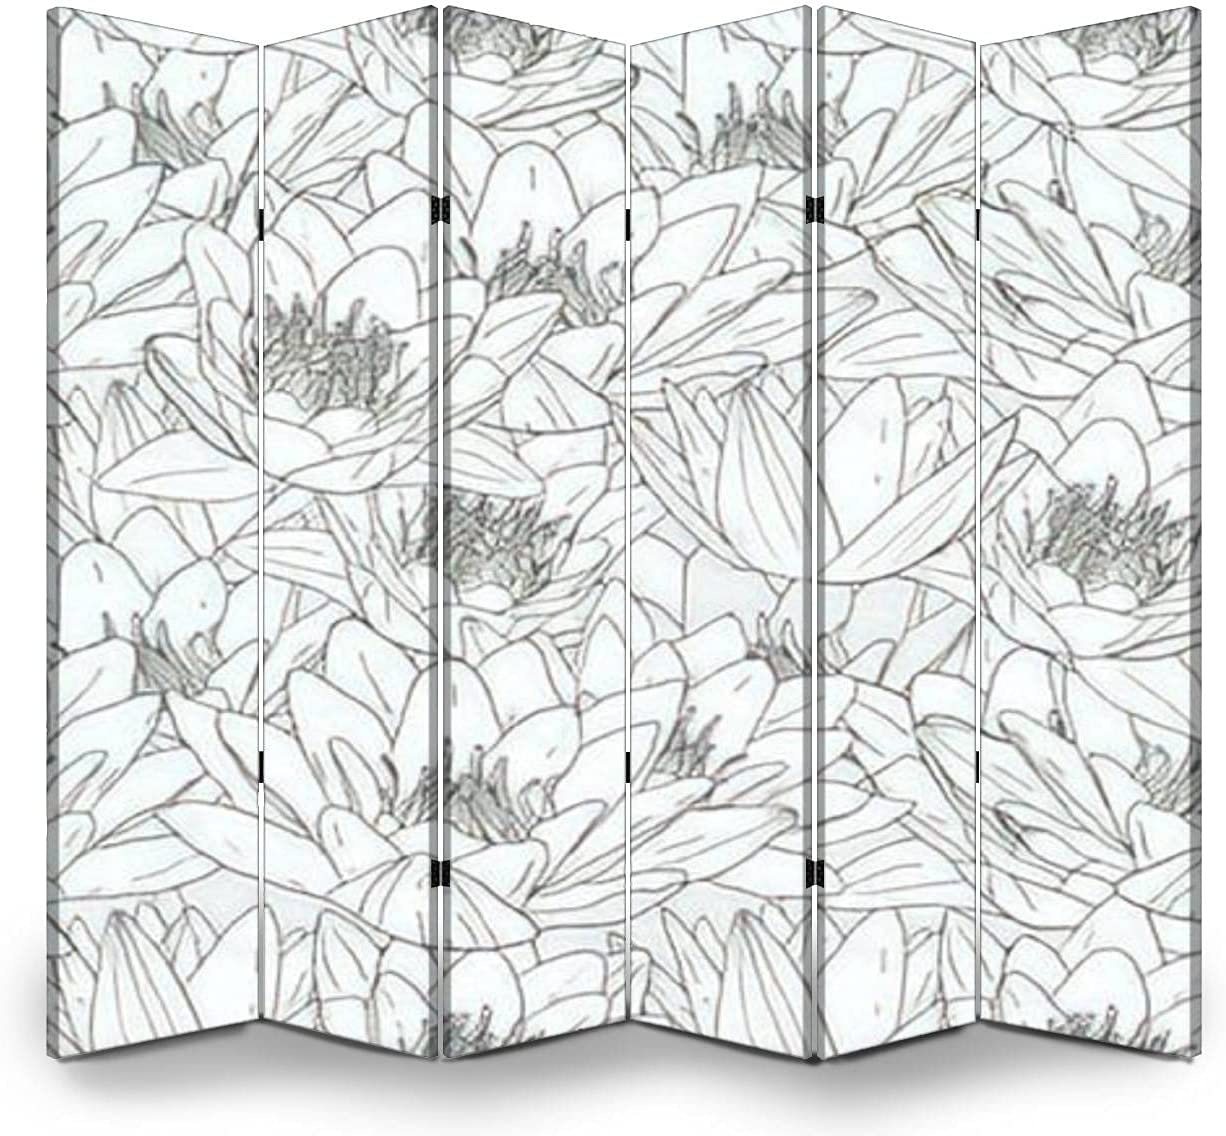 6 Panel Wall Divider Seamless Pattern Lily 5% OFF White Flowers with Fo Max 87% OFF